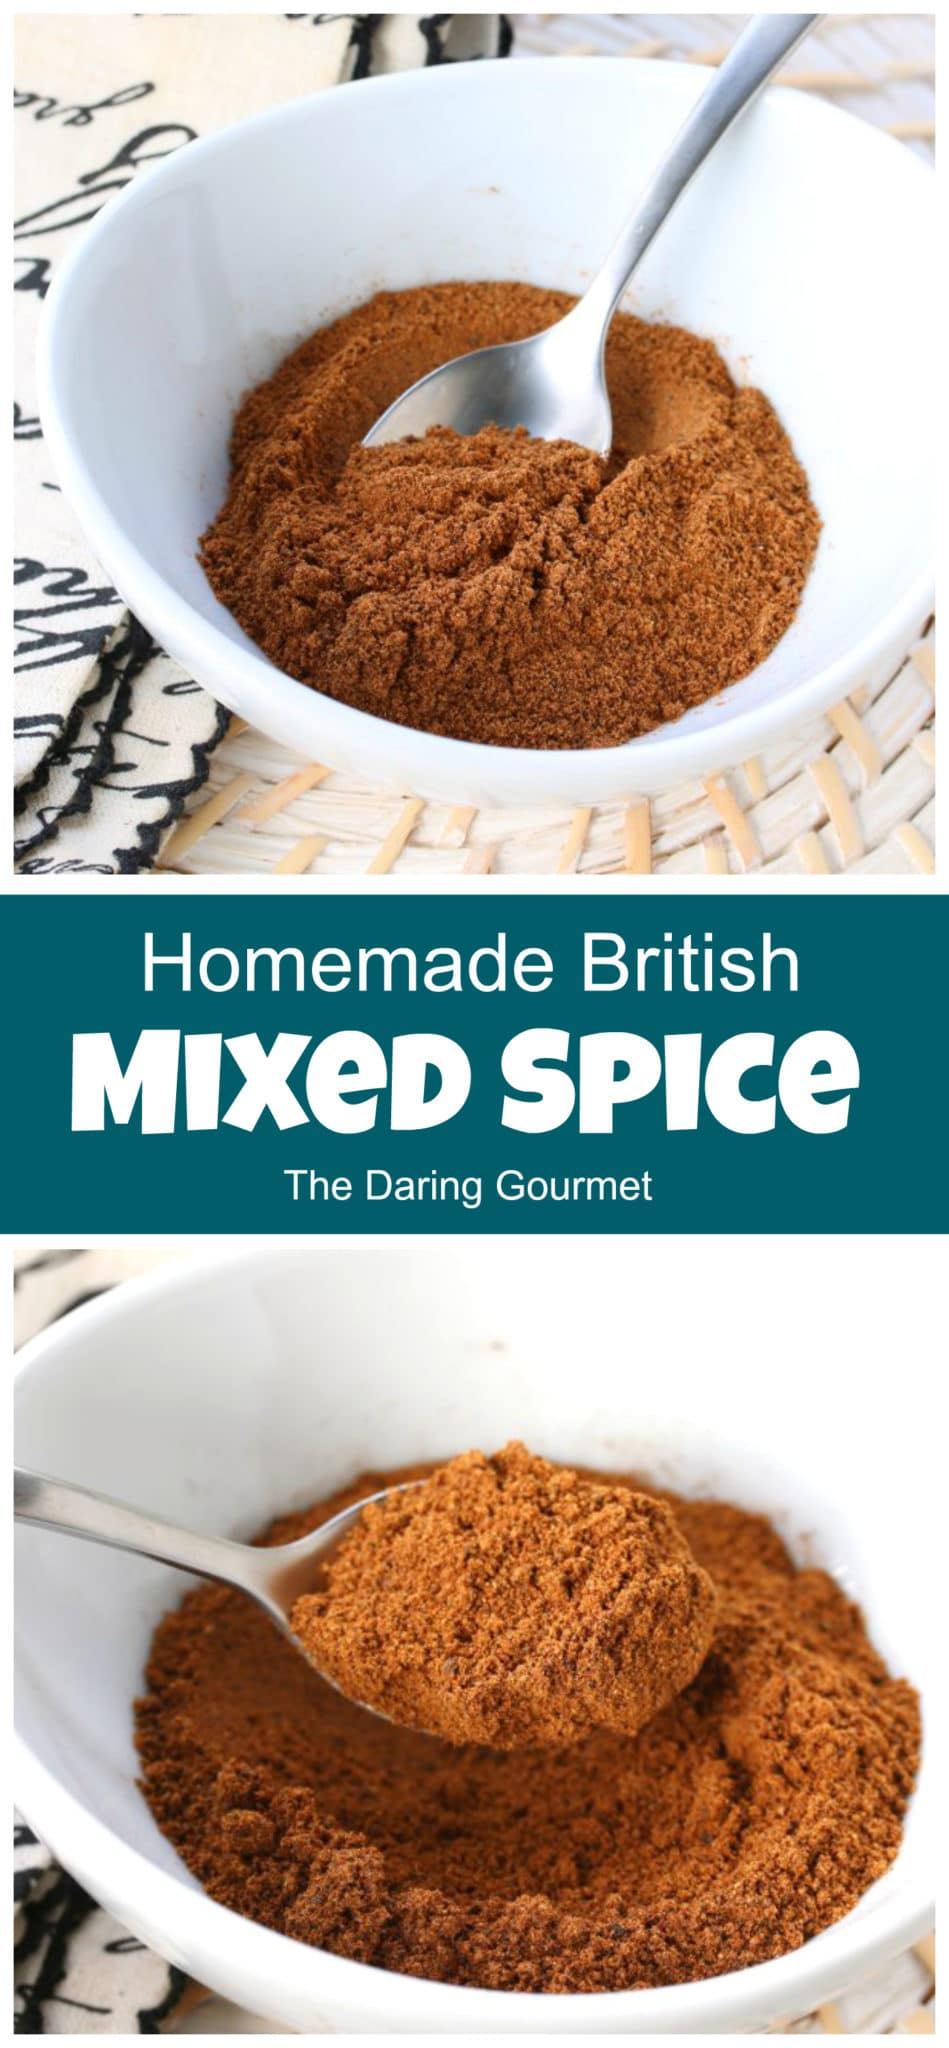 mixed spice recipe homemade british traditional authentic gingerbread spice blend